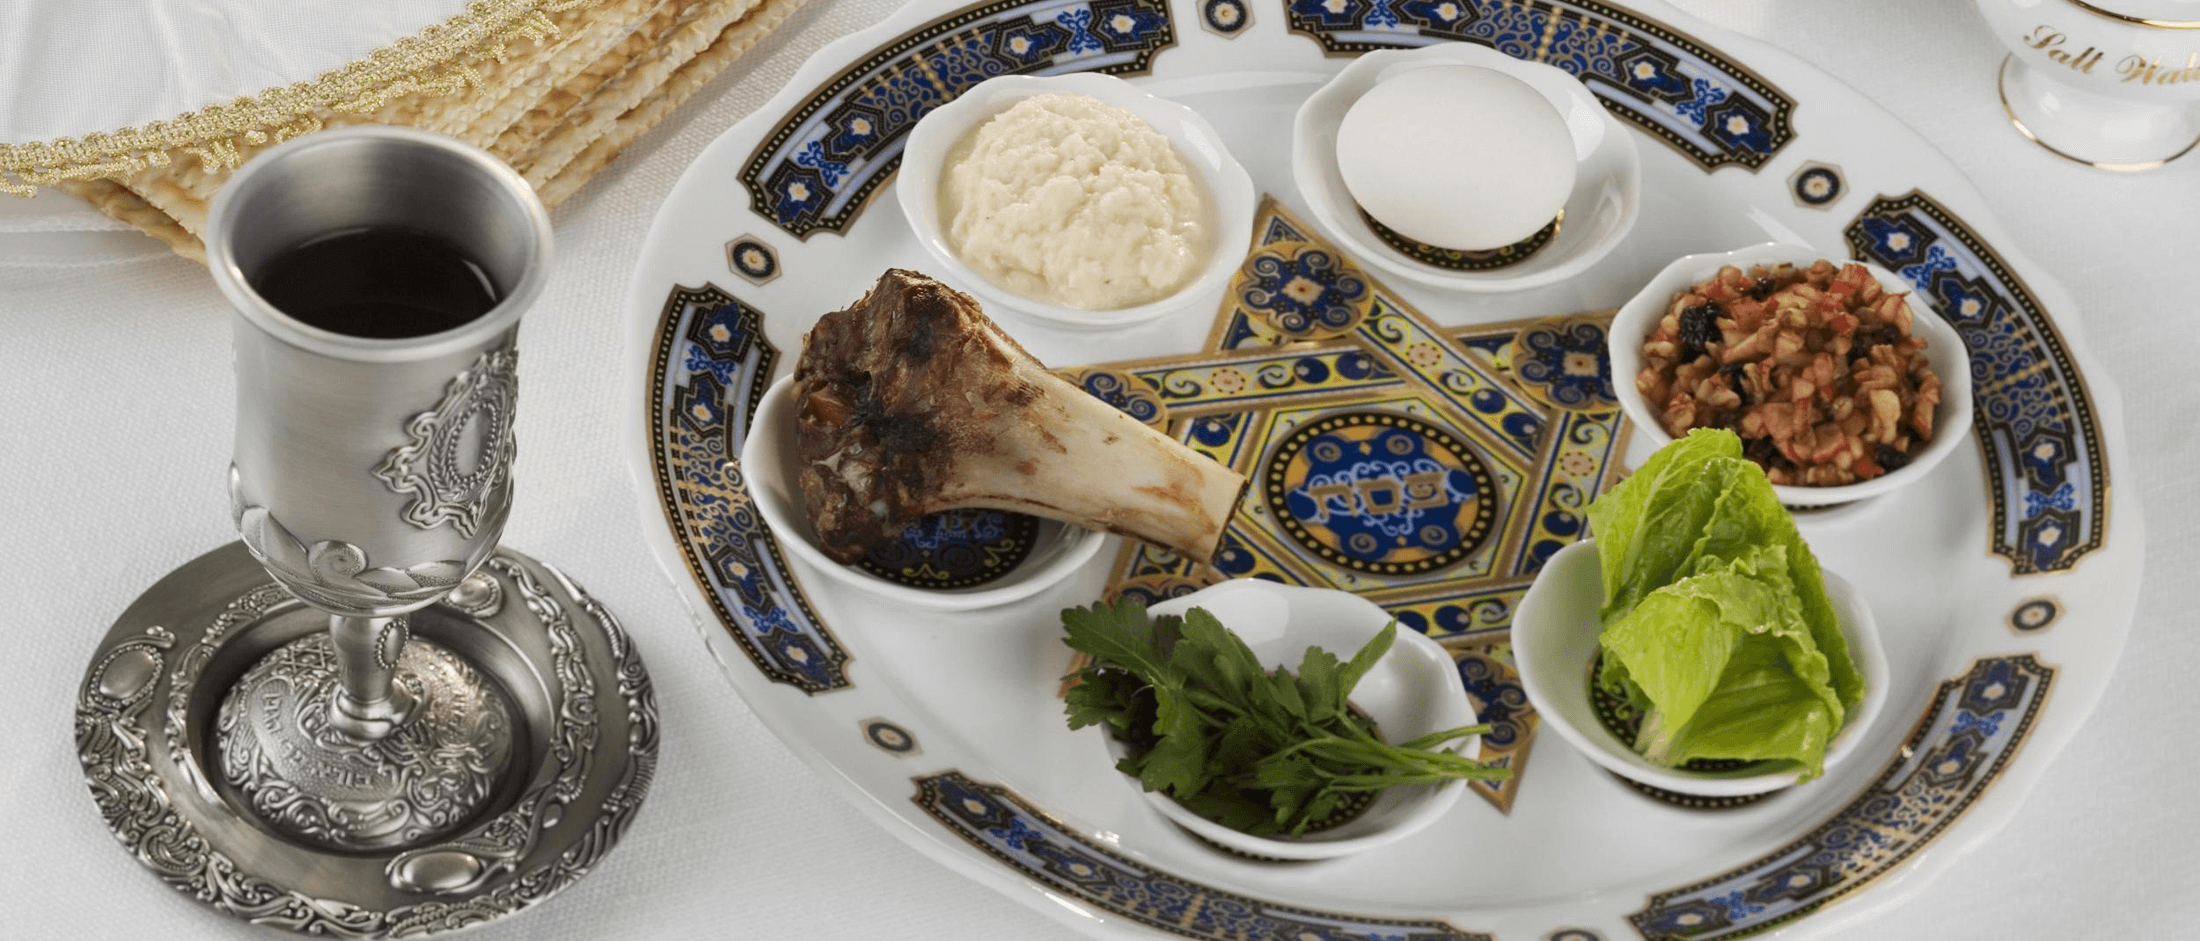 Passover Feast Png - Should Christians Participate in the Passover Seder? | Ask Dr. Brown